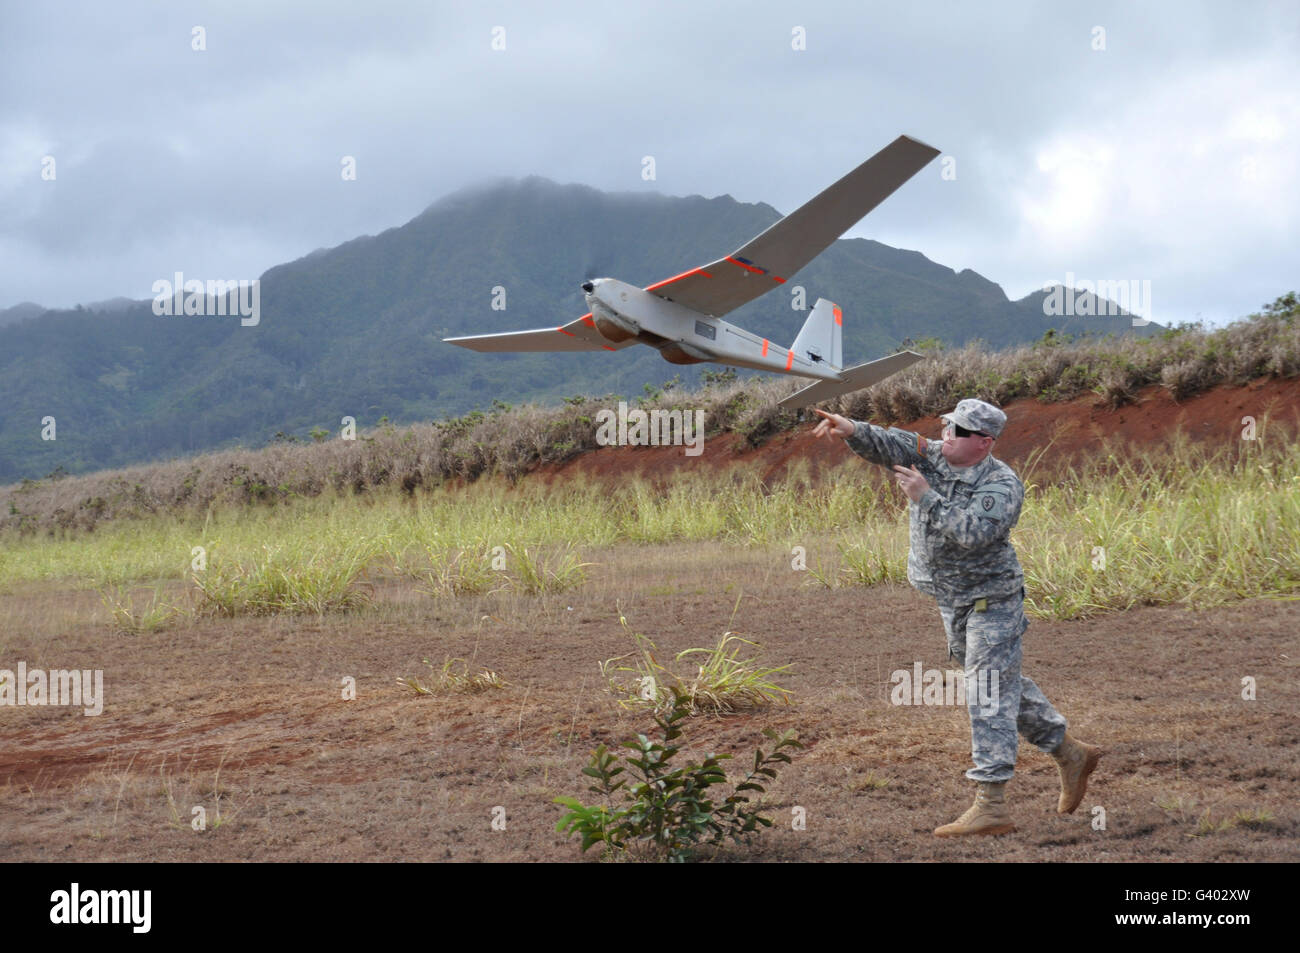 Soldier launches a RQ-20 unmanned aircraft system. - Stock Image